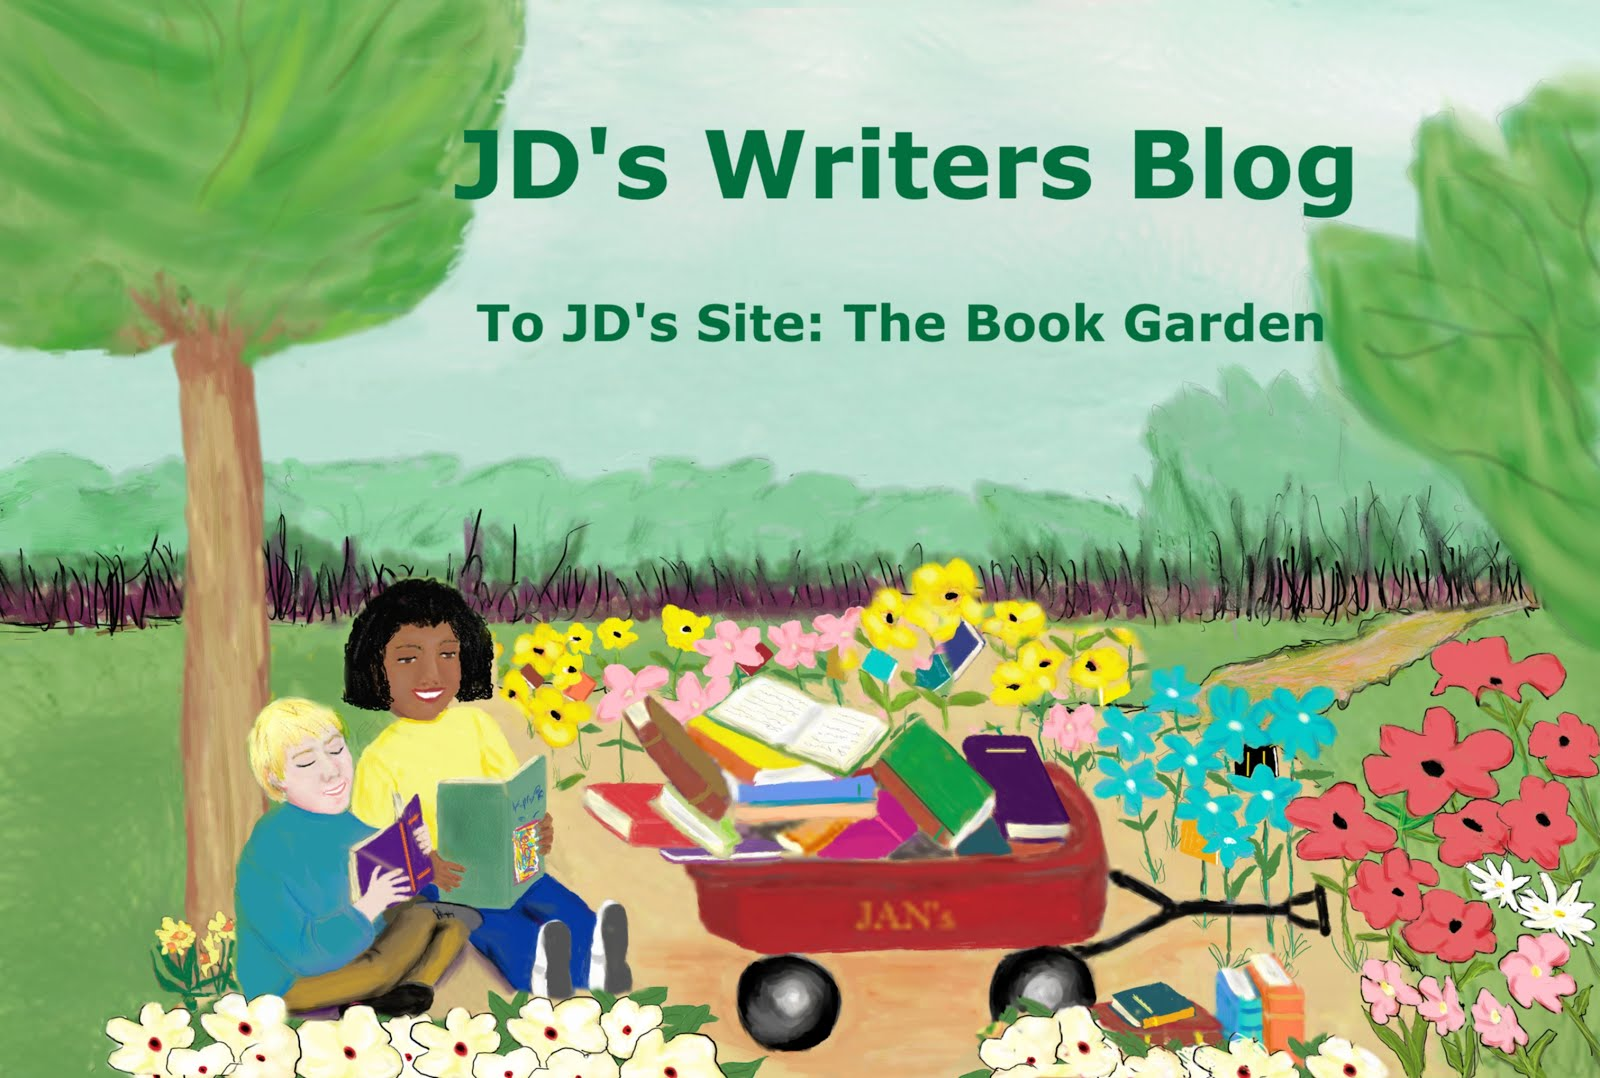 To JD's site: The Book Garden